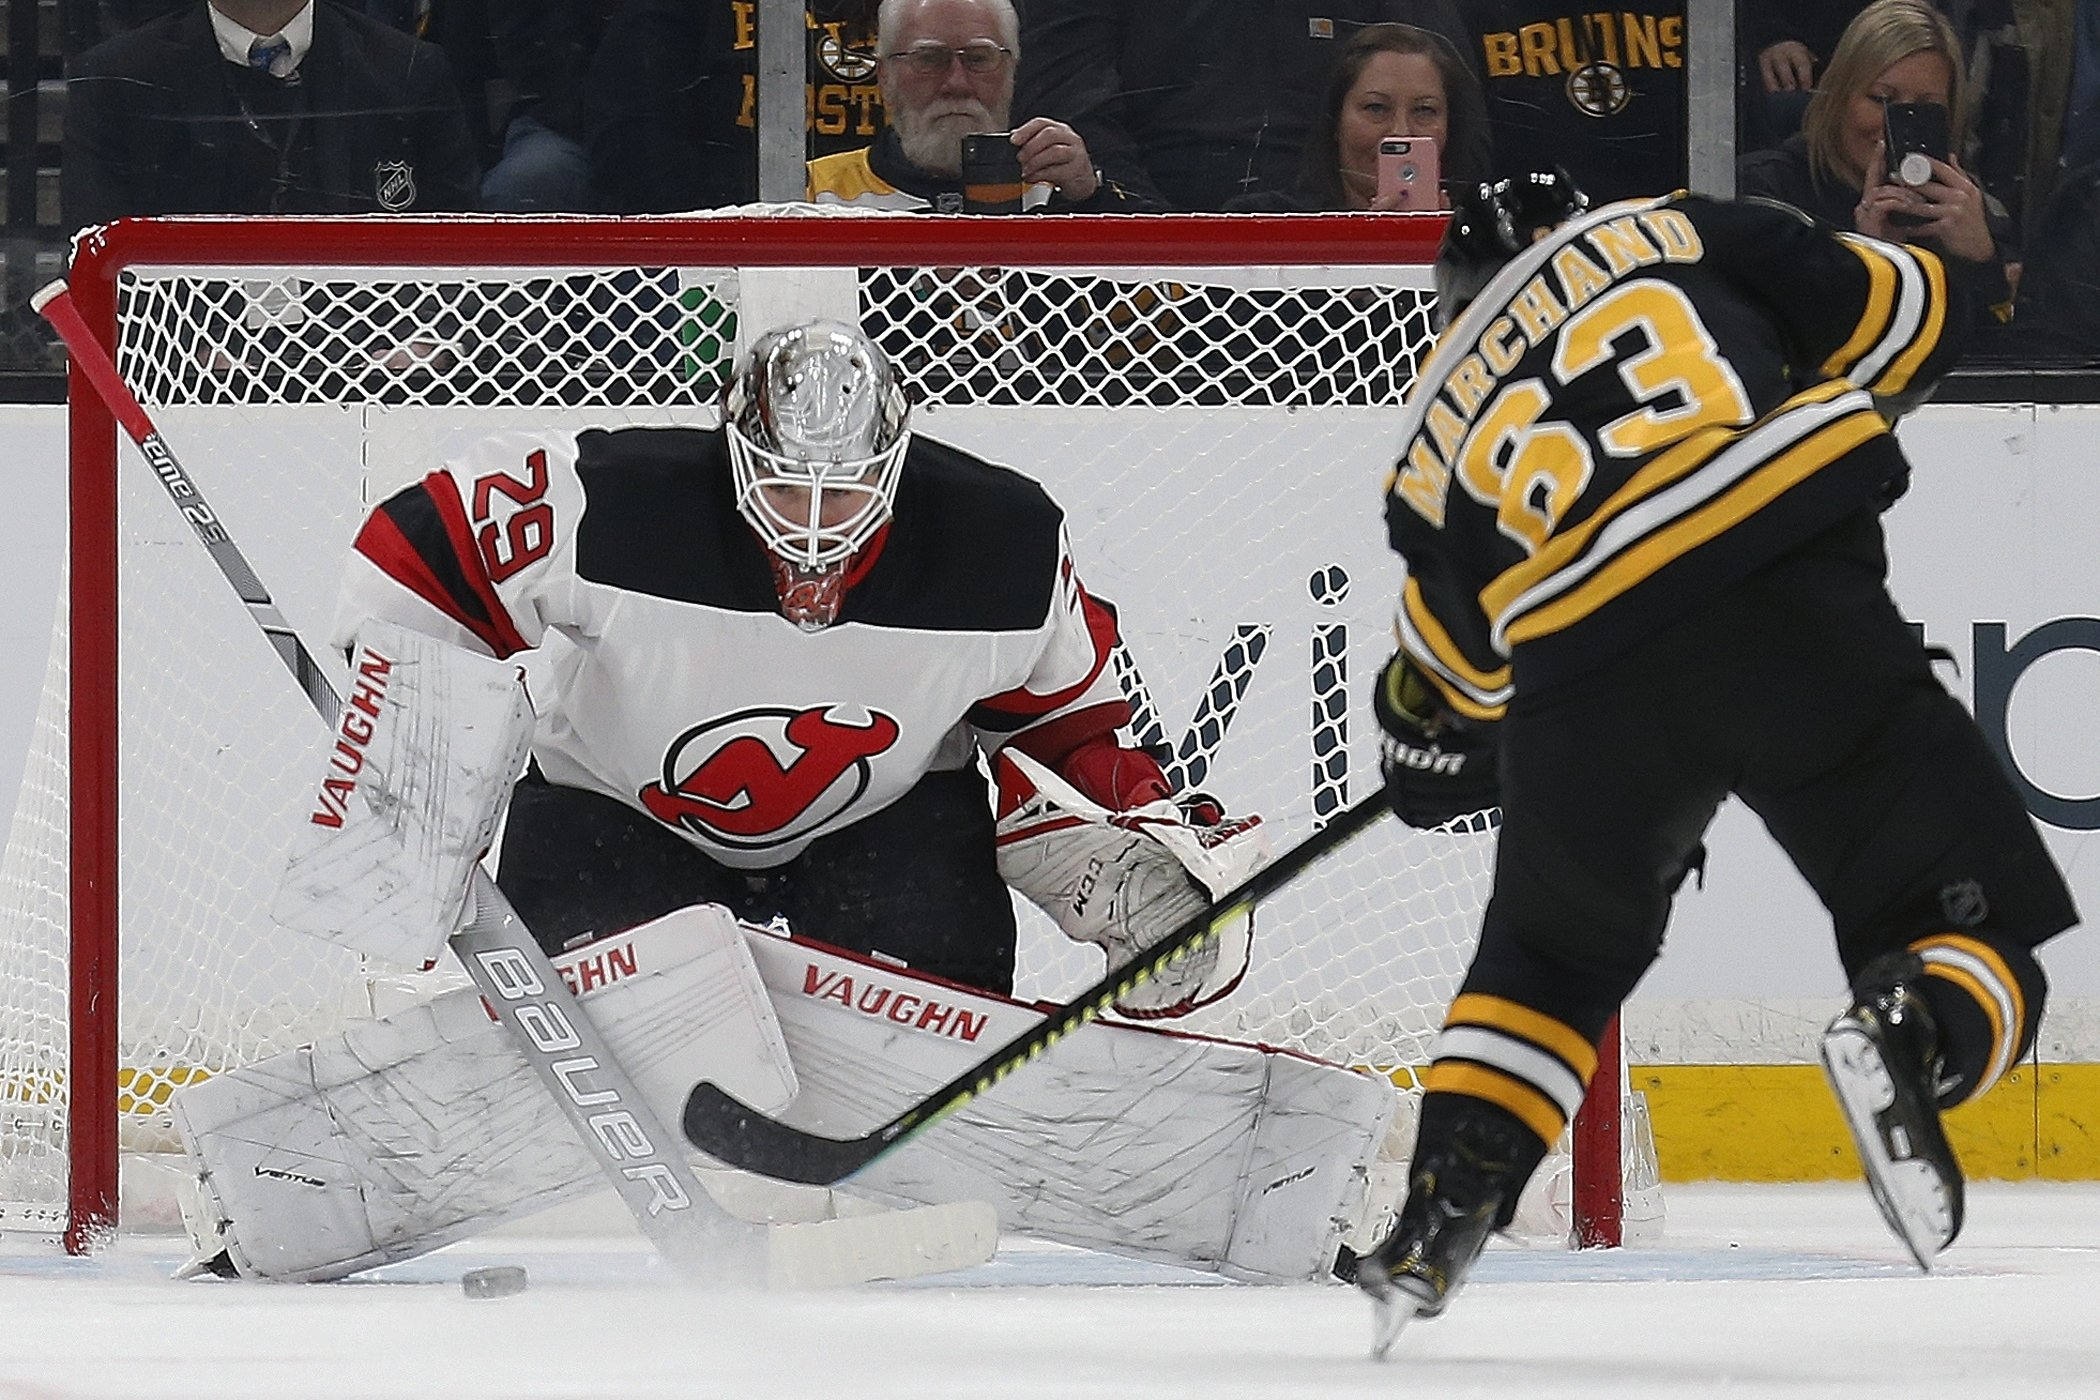 Marchand s goal keeps Bruins rolling with 1-0 win vs. Devils 02bbcd506